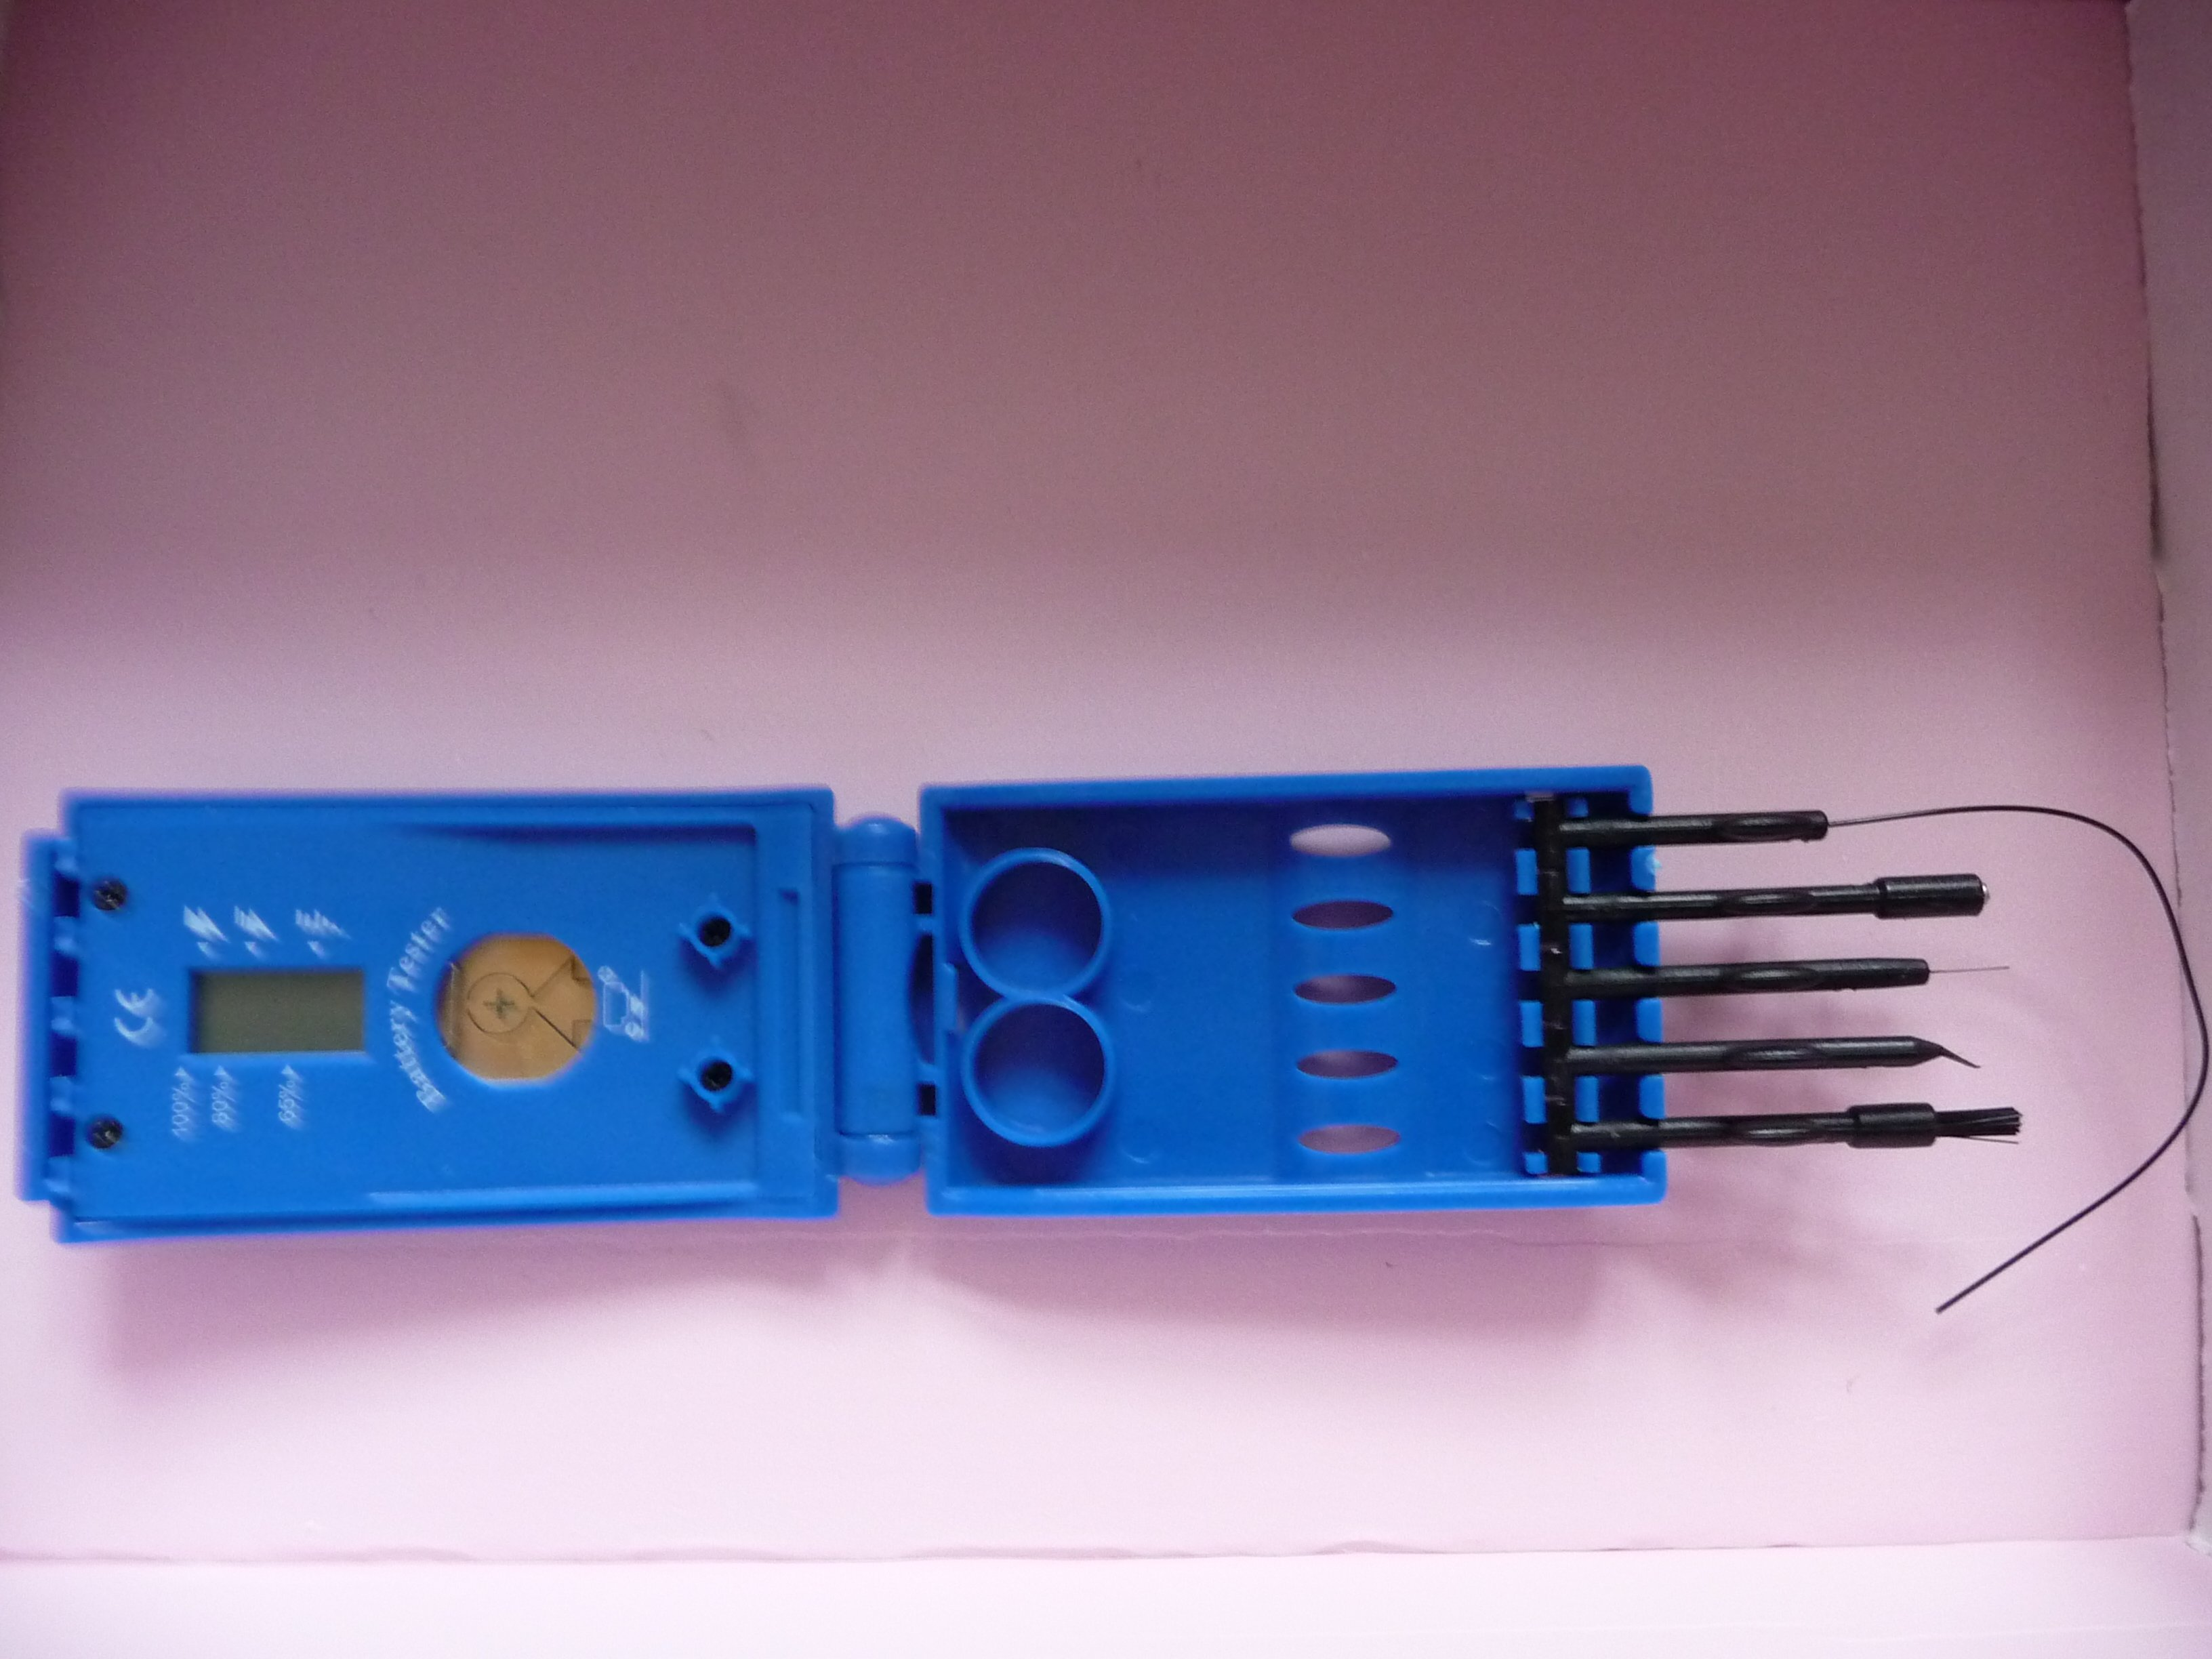 Hearing Aid Cleaning Kit With Battery Tester And Holder